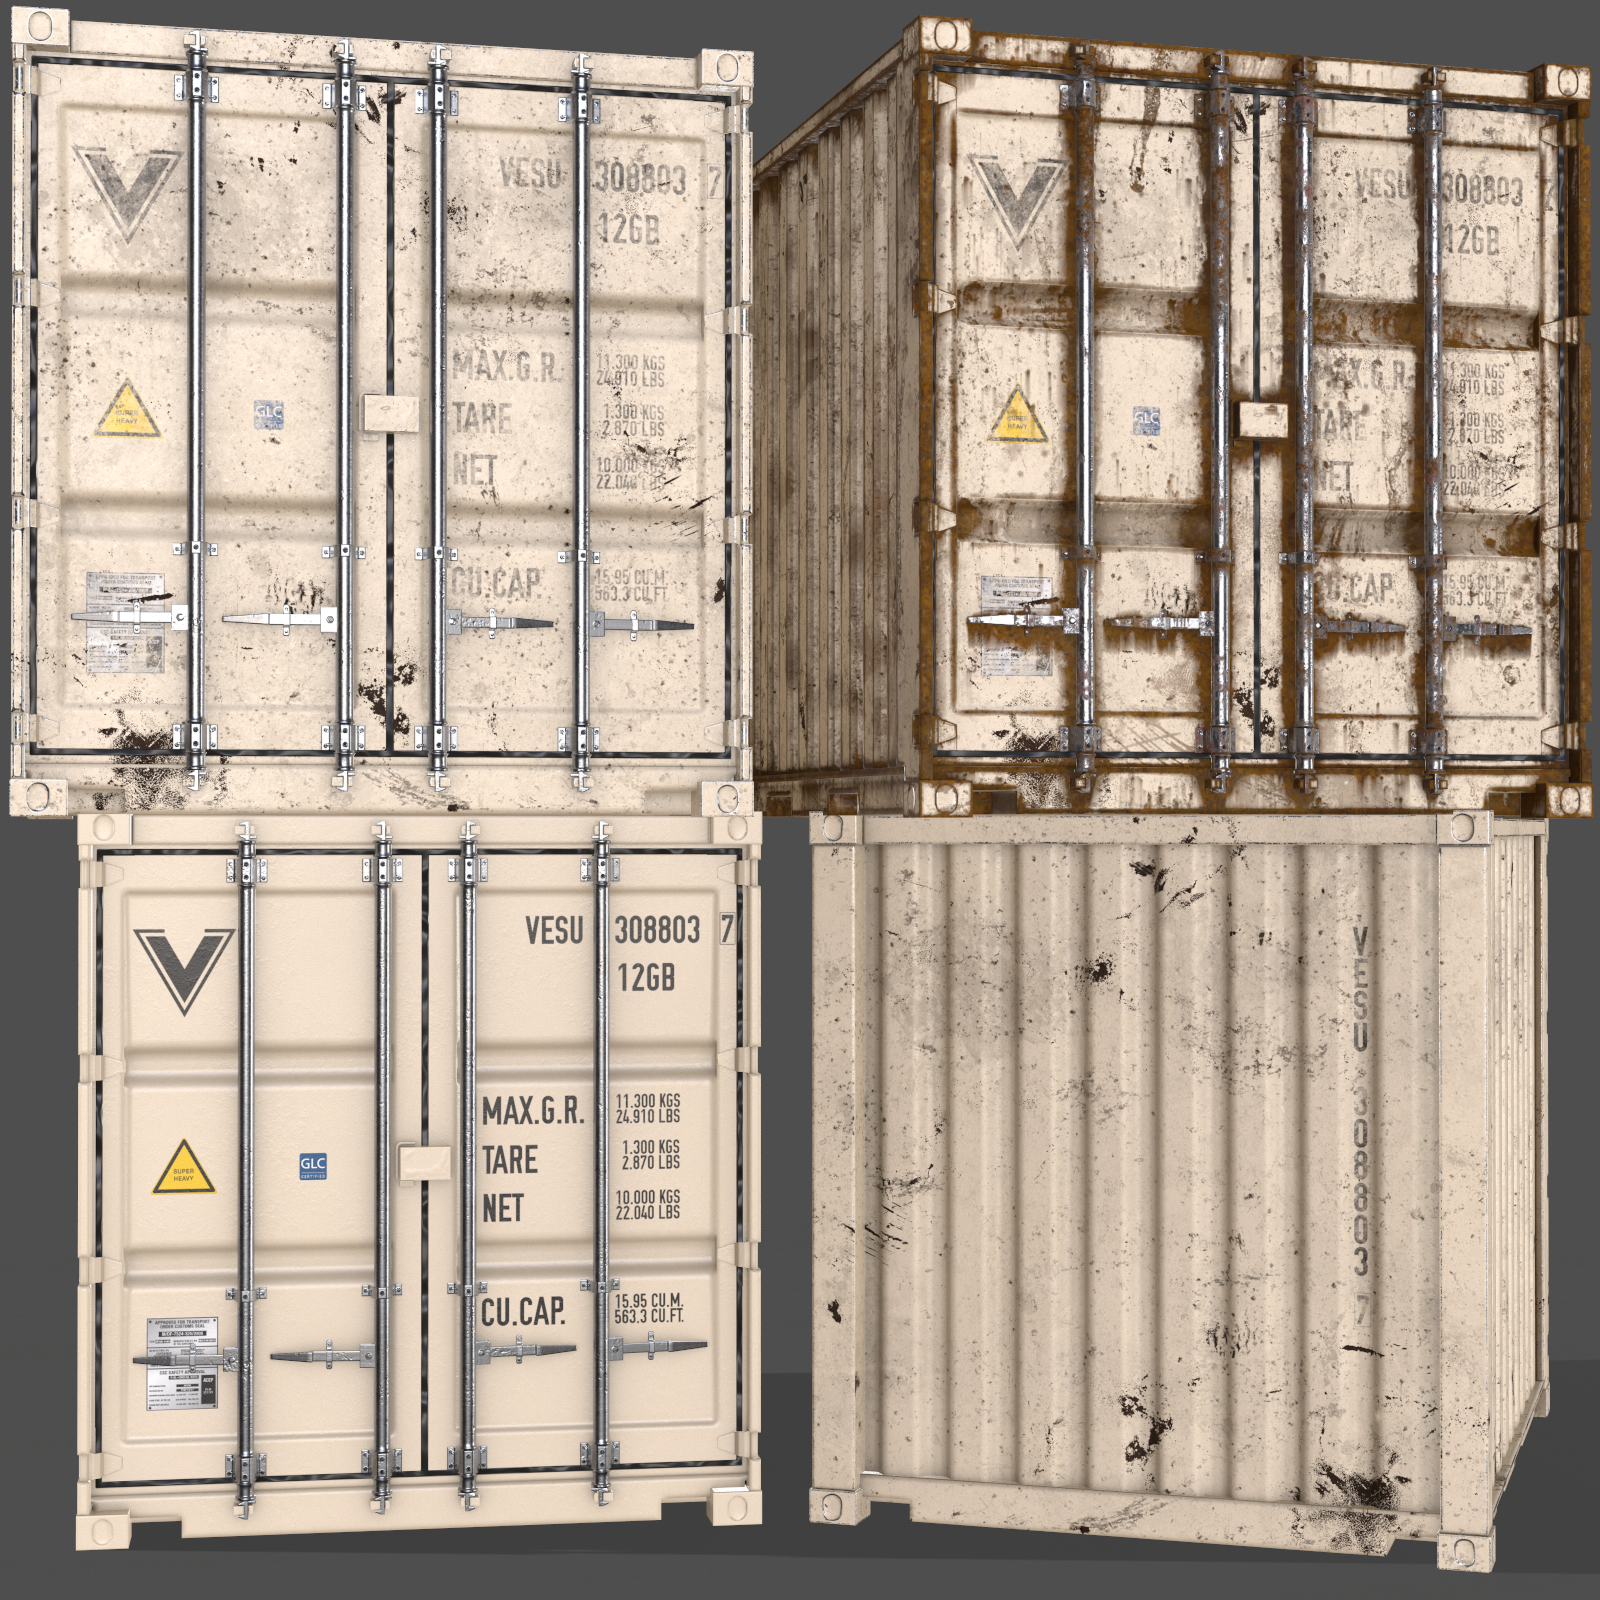 Pbr 10 Ft Storage Container White 3d Model In 2020 Low Poly 3d Models Container Pbr